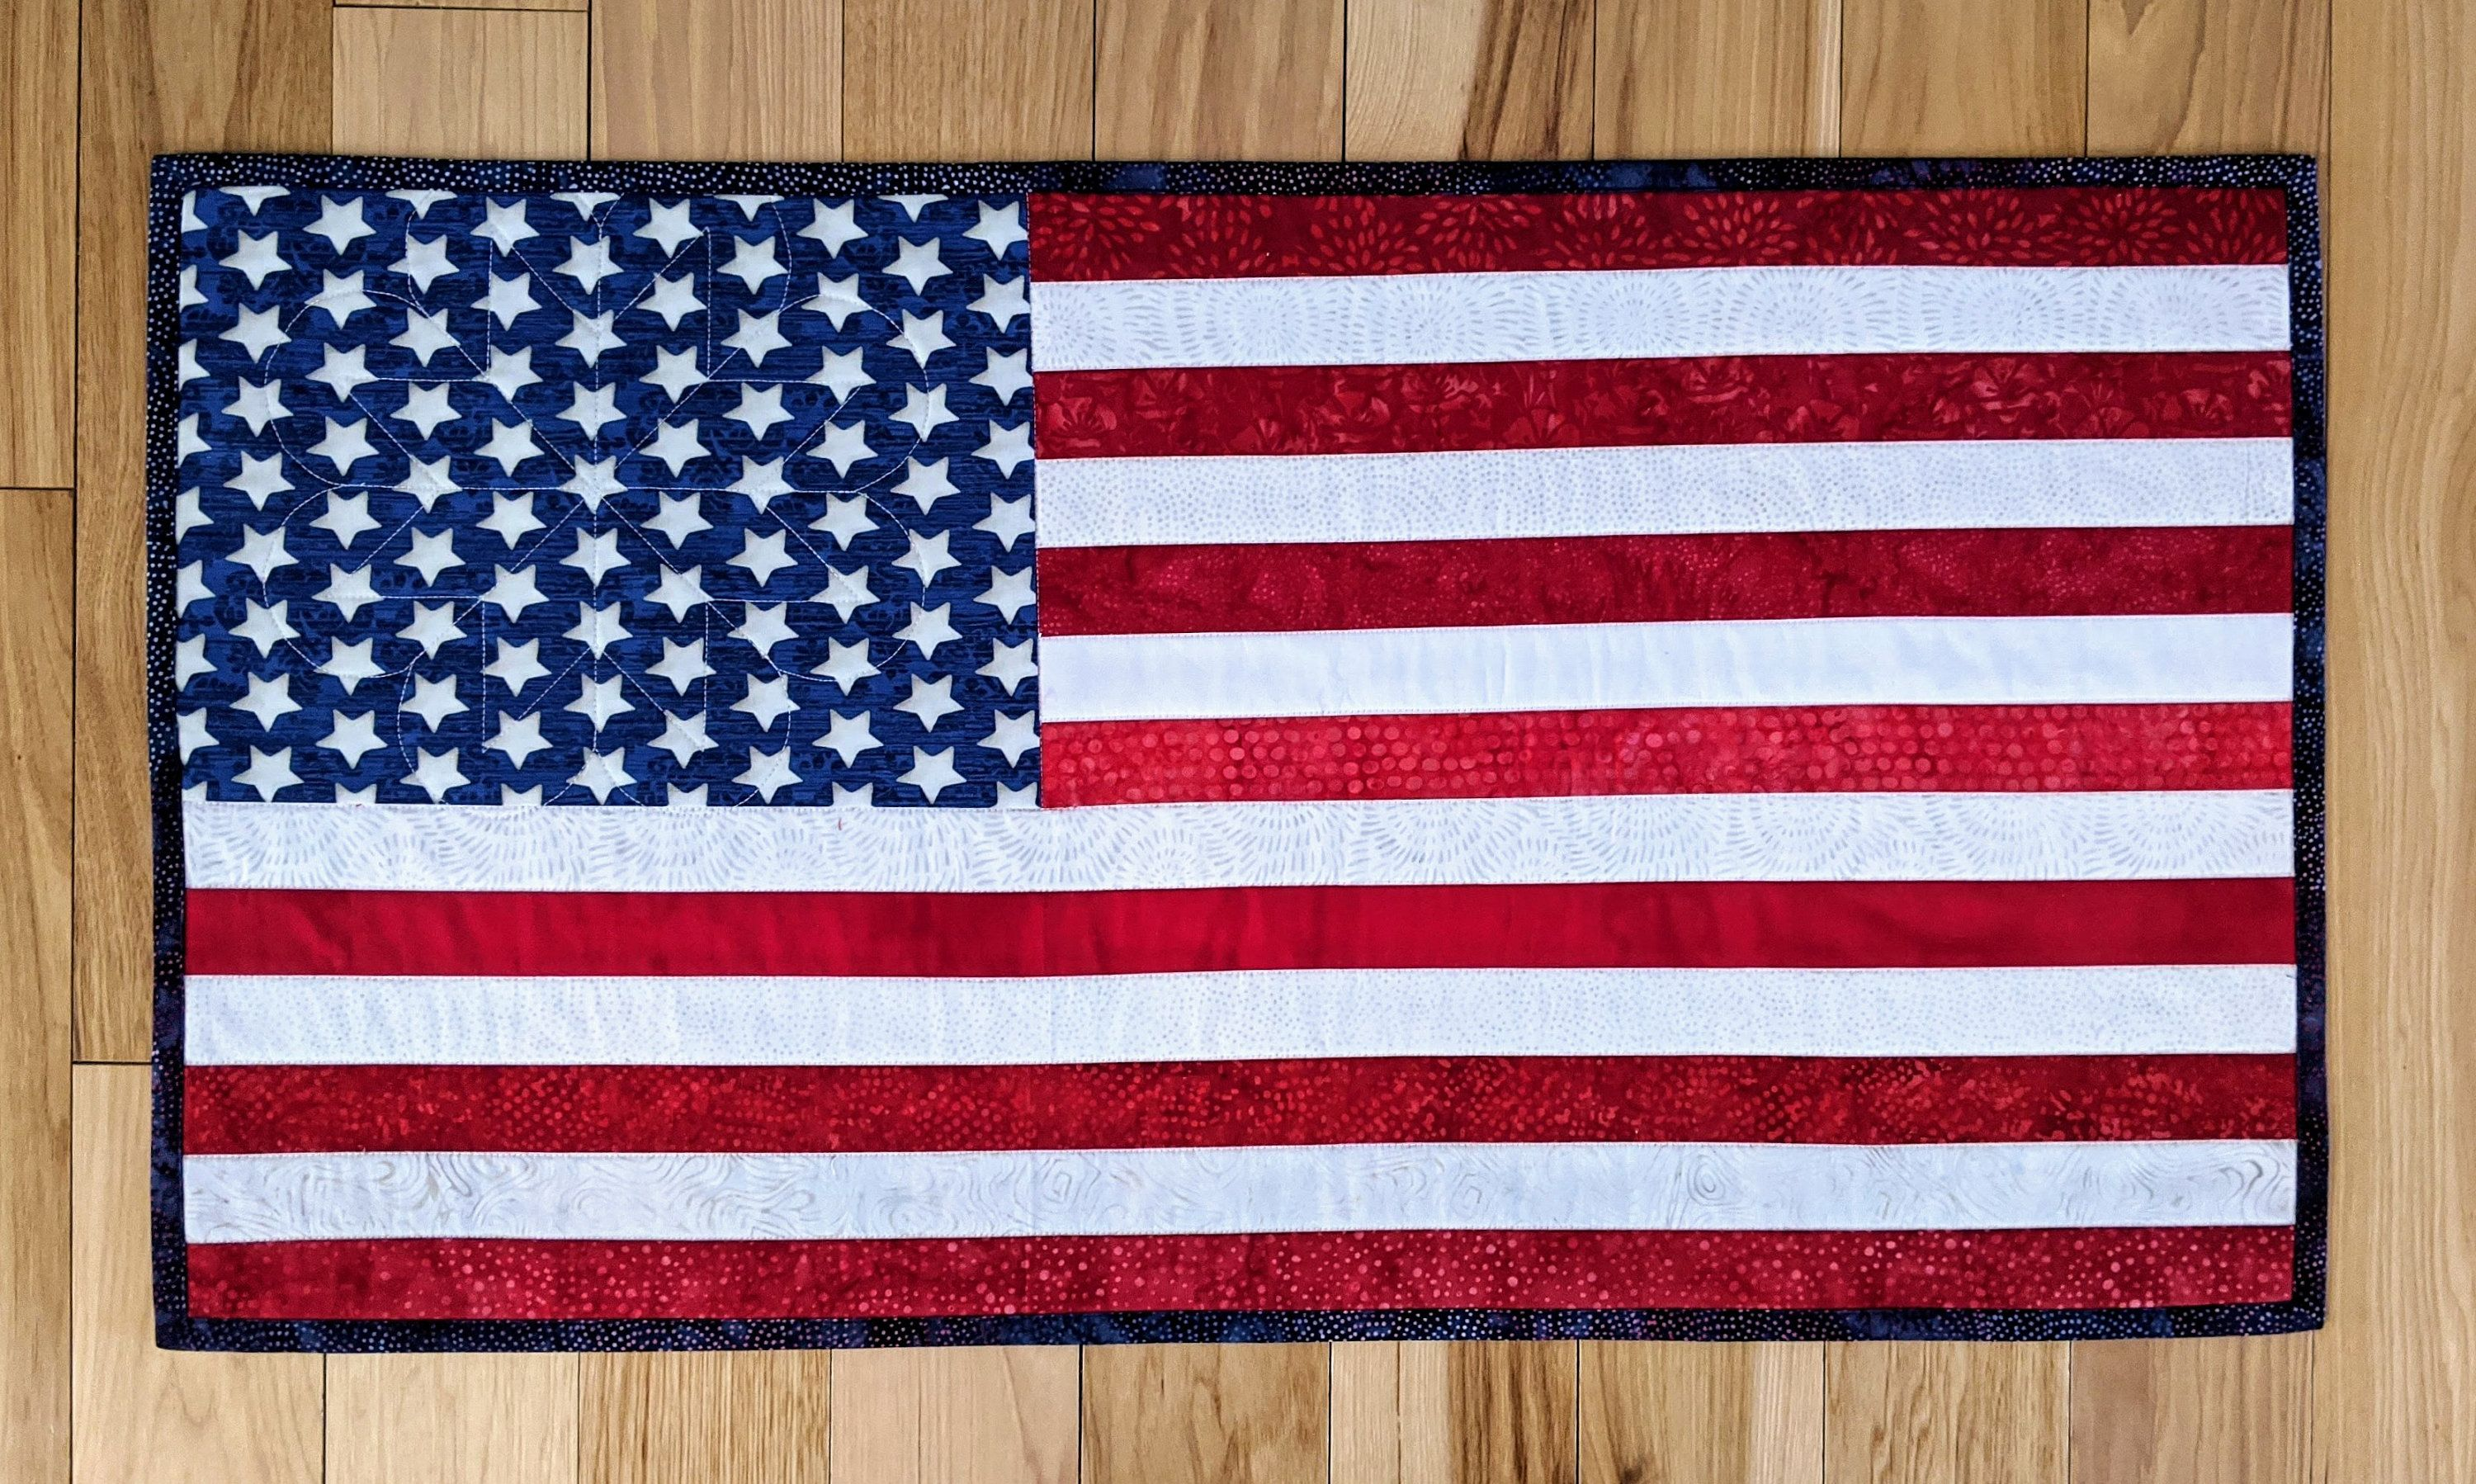 Quilted Table Runner Quilted Wall Hanging U S Flag Stars And Stripes Flag In 2020 Quilted Wall Hangings Quilted Table Runner Wall Hanging